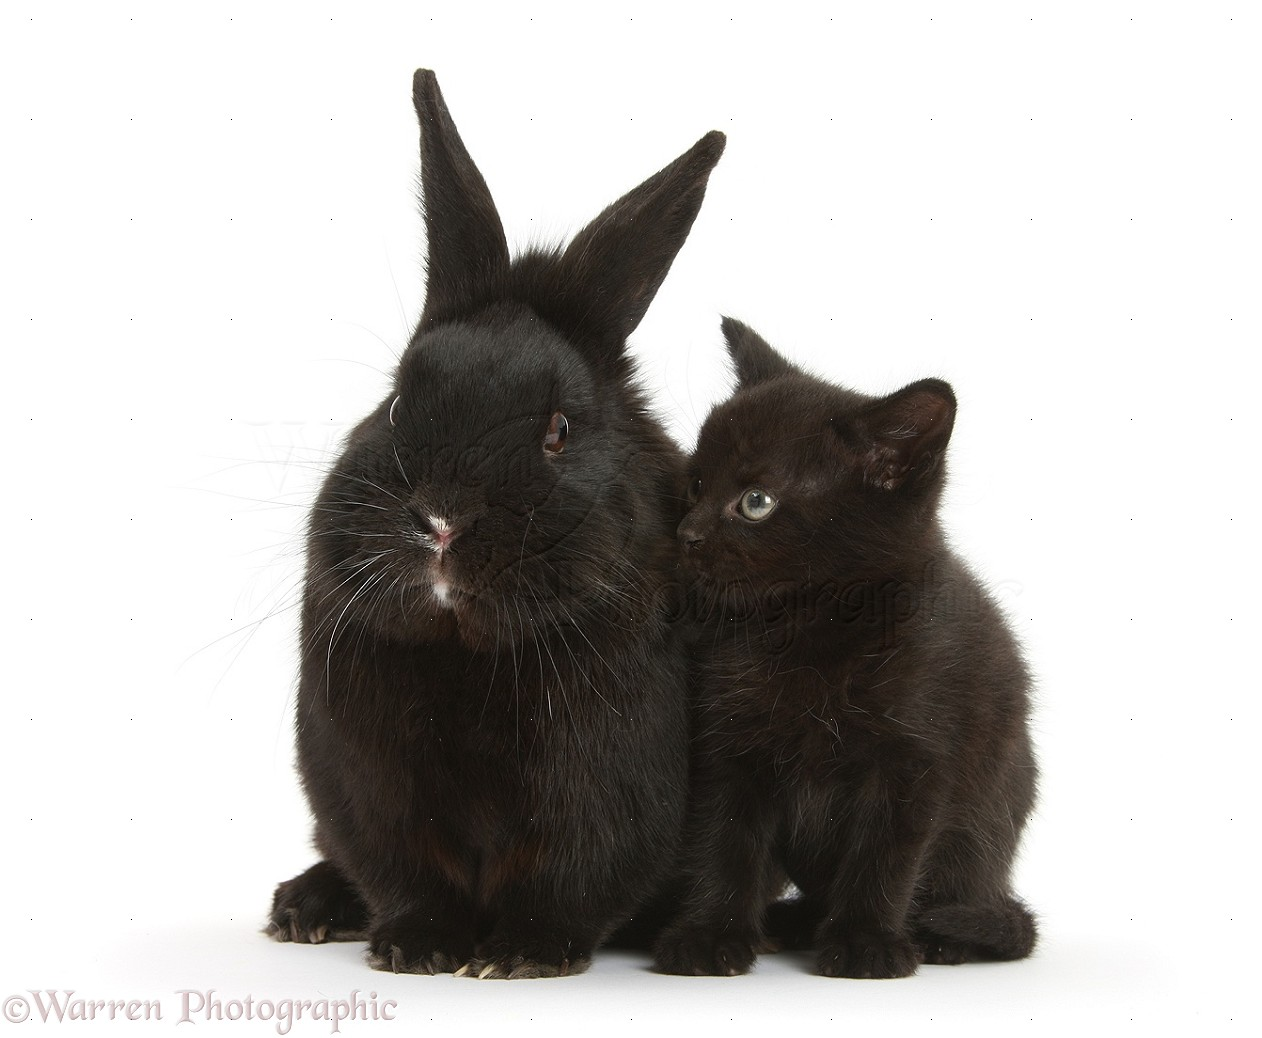 pets black kitten 7 weeks old and black rabbit photo